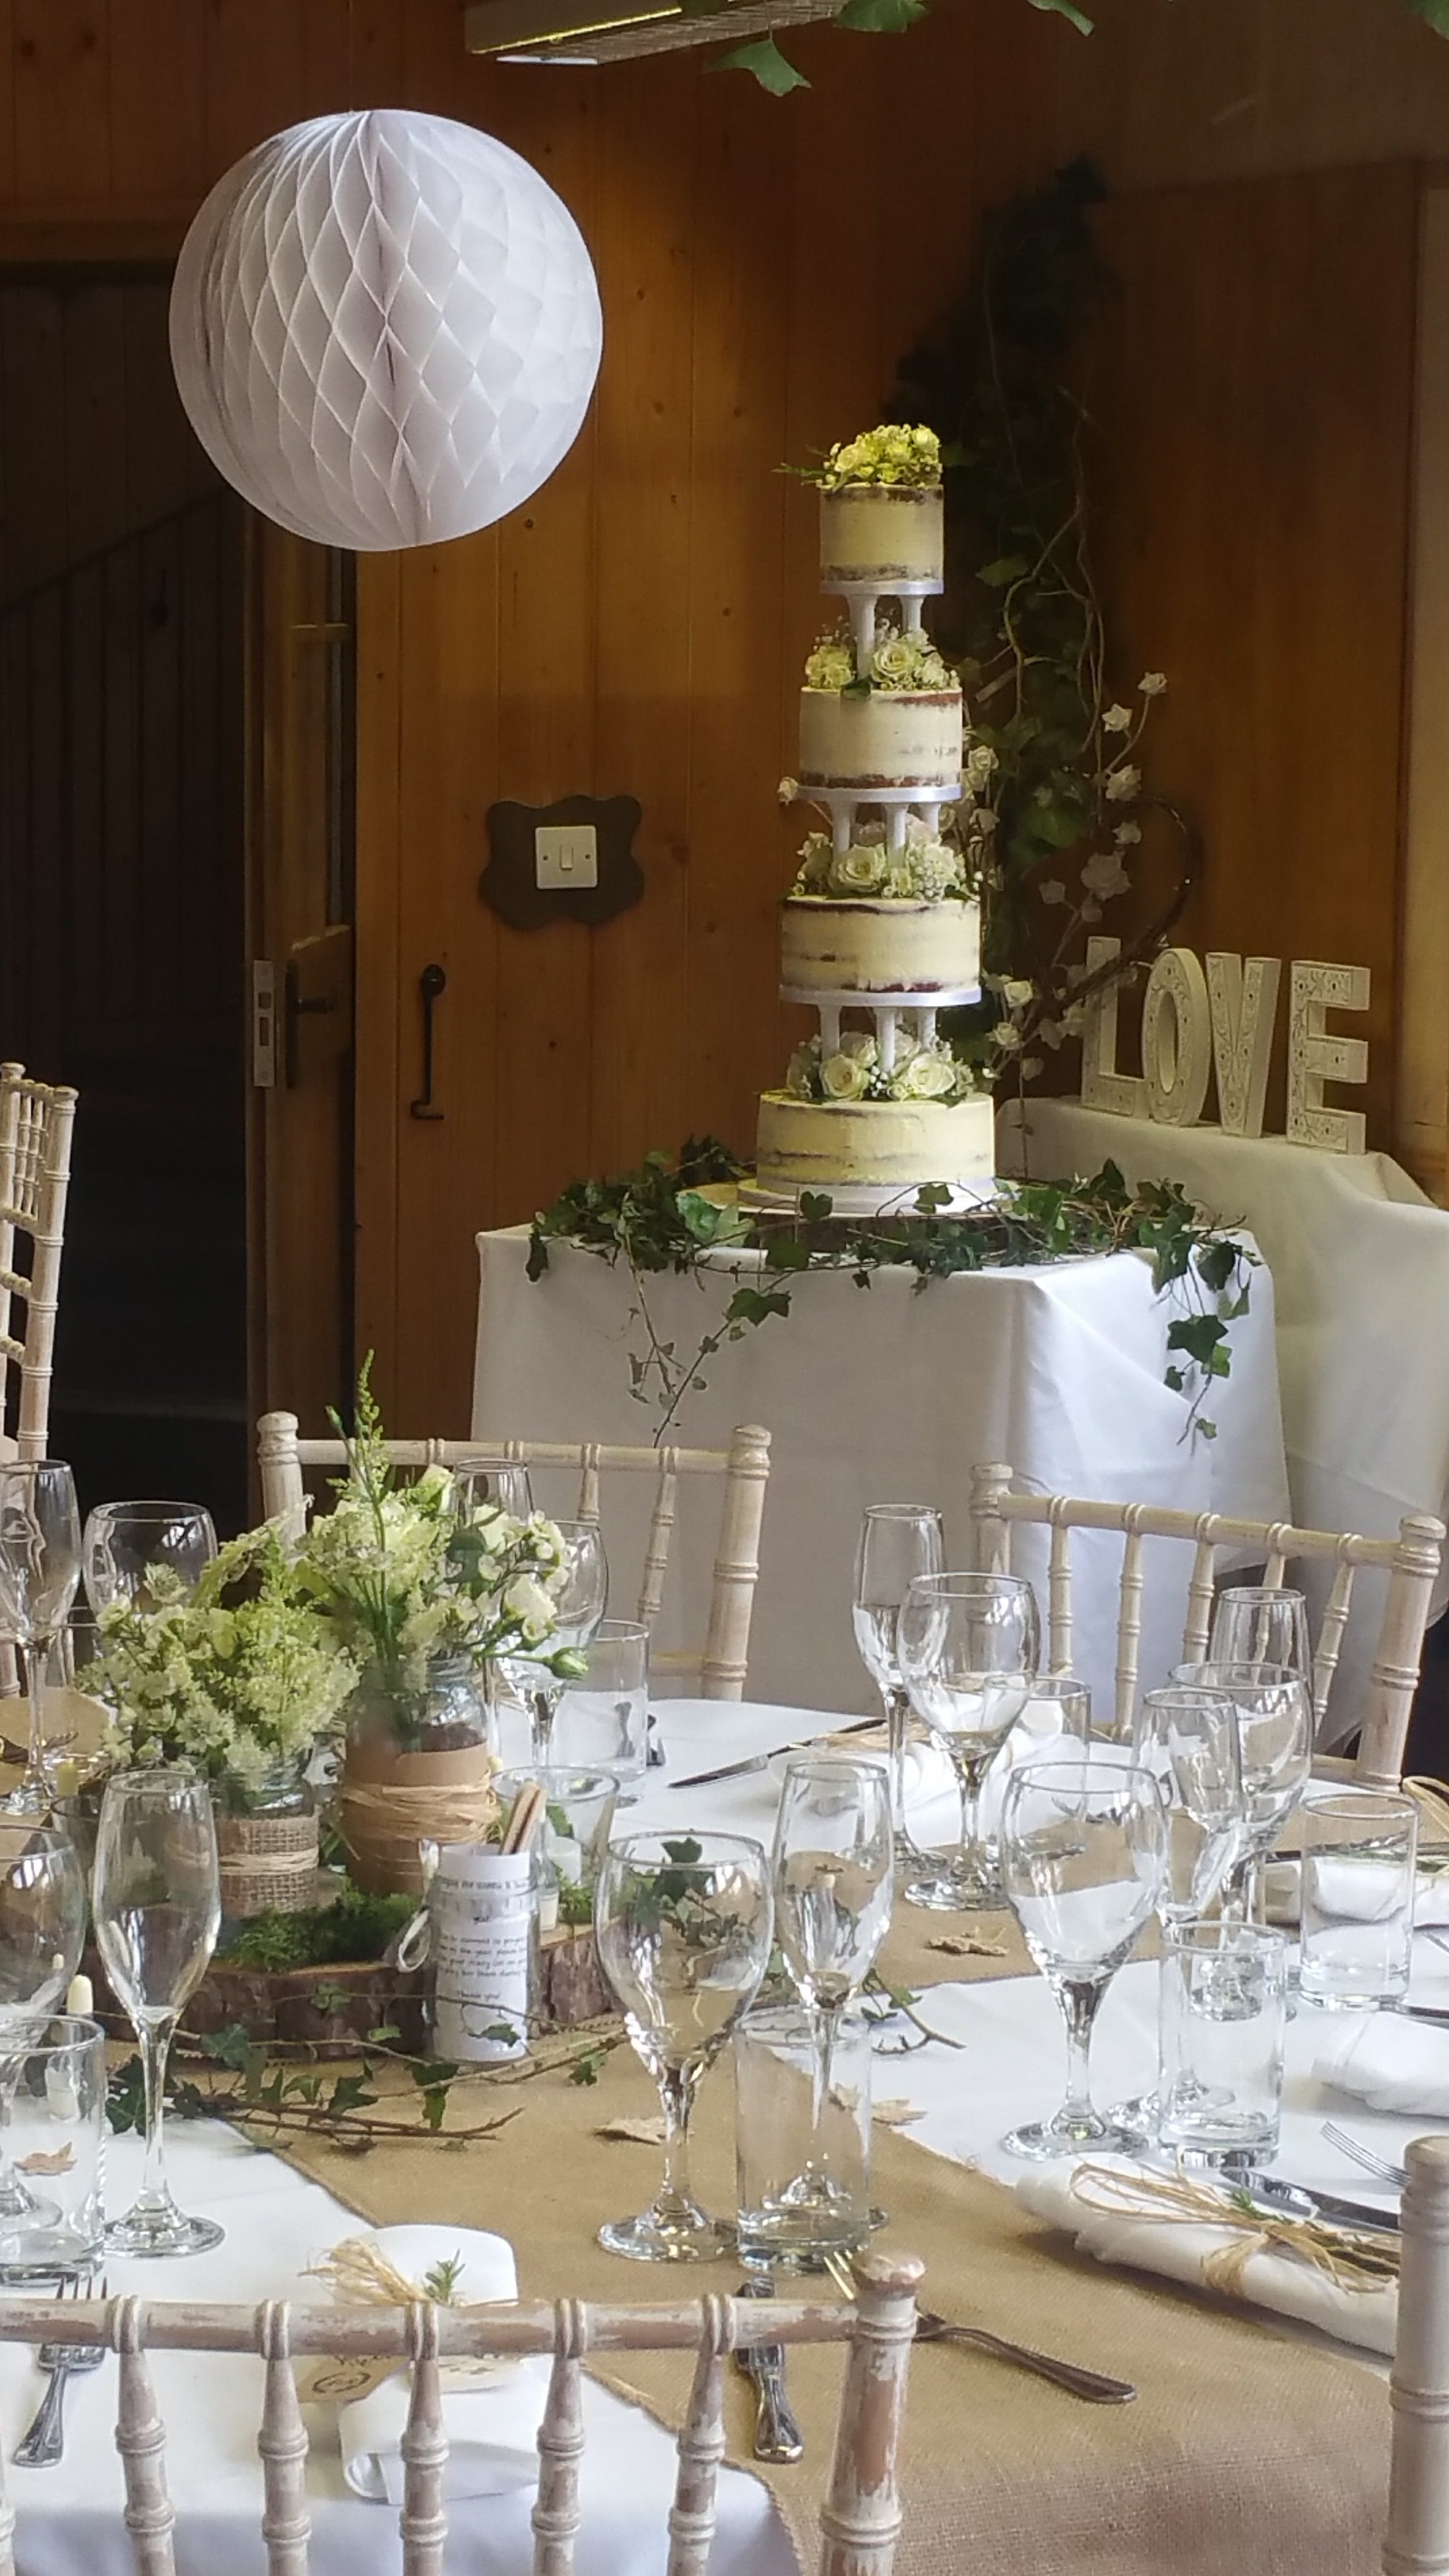 4 tier semi naked wedding cake - A wonderful take on a traditional yet modern cake. Pillars and a semi naked cake in 4 different flavours matched the theme so well.